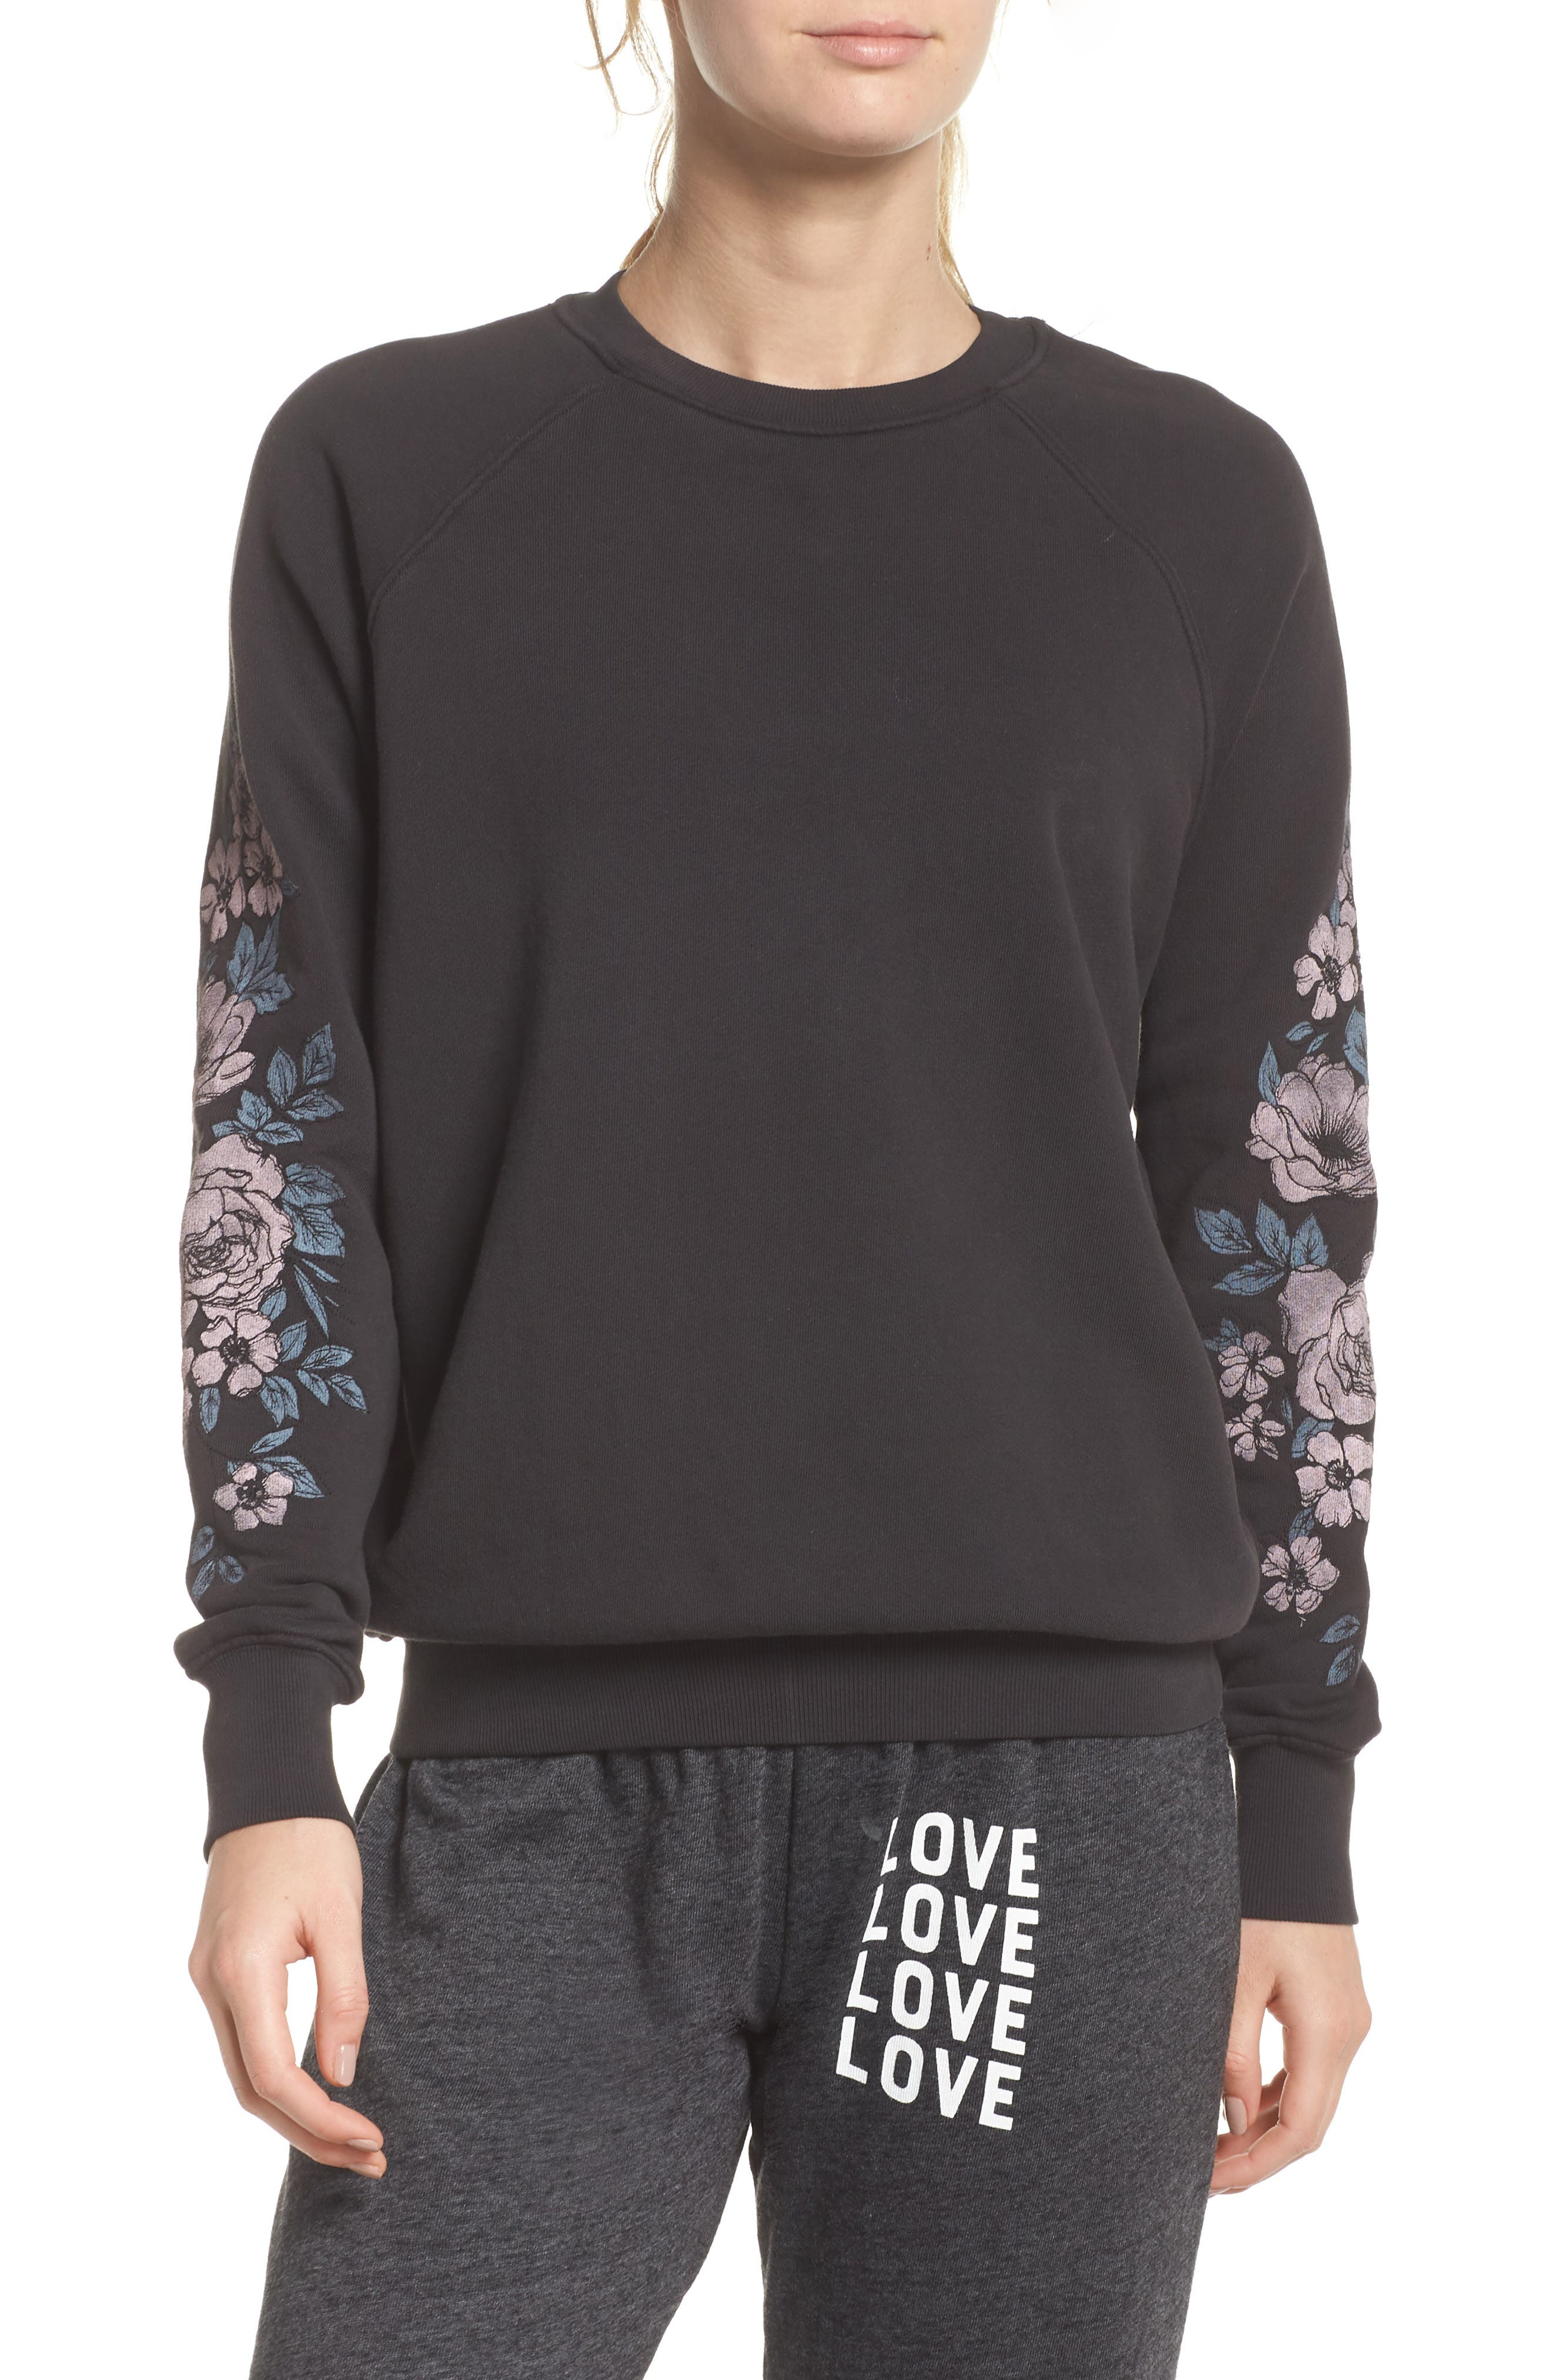 Give Love Sweatshirt,                             Main thumbnail 1, color,                             VINTAGE BLACK